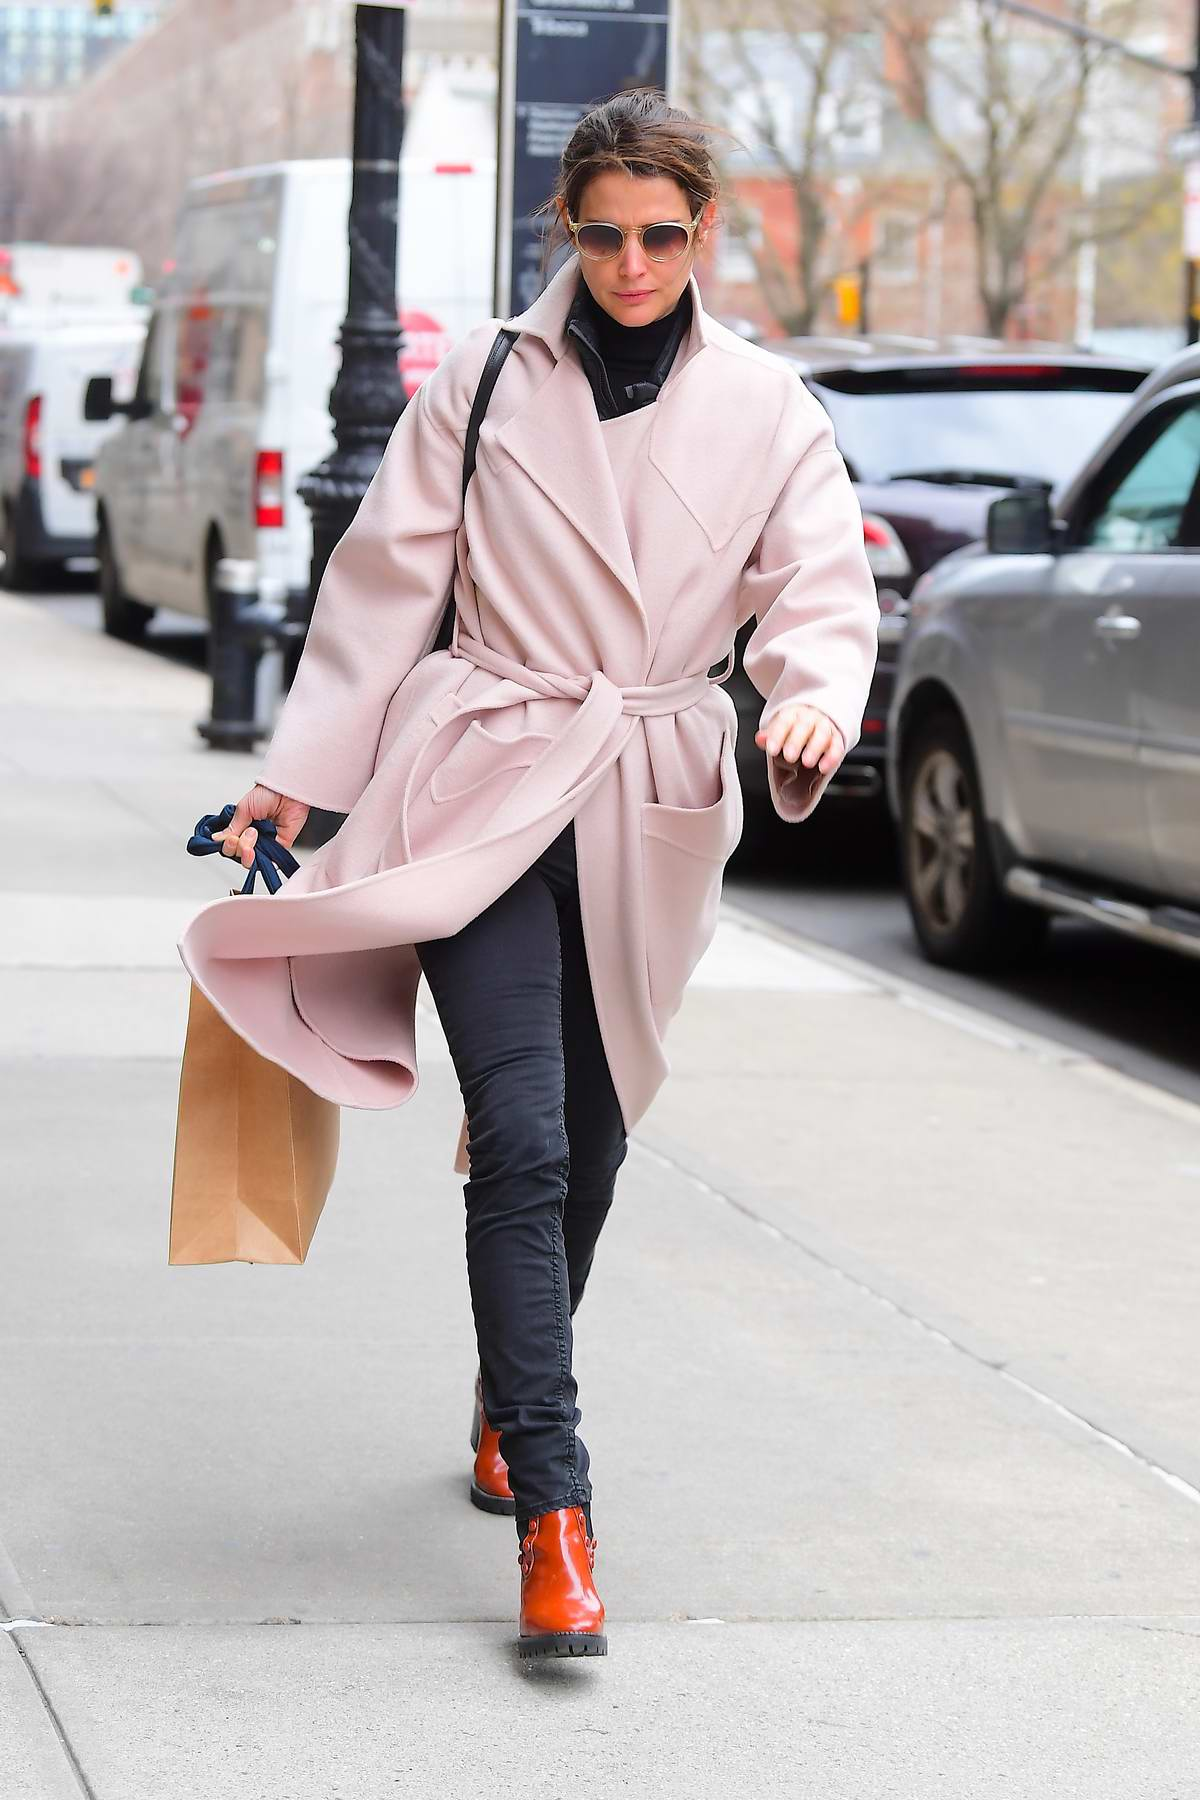 Cobie Smulders wears a soft pink trench coat as she steps out for some shopping on a windy day in New York City